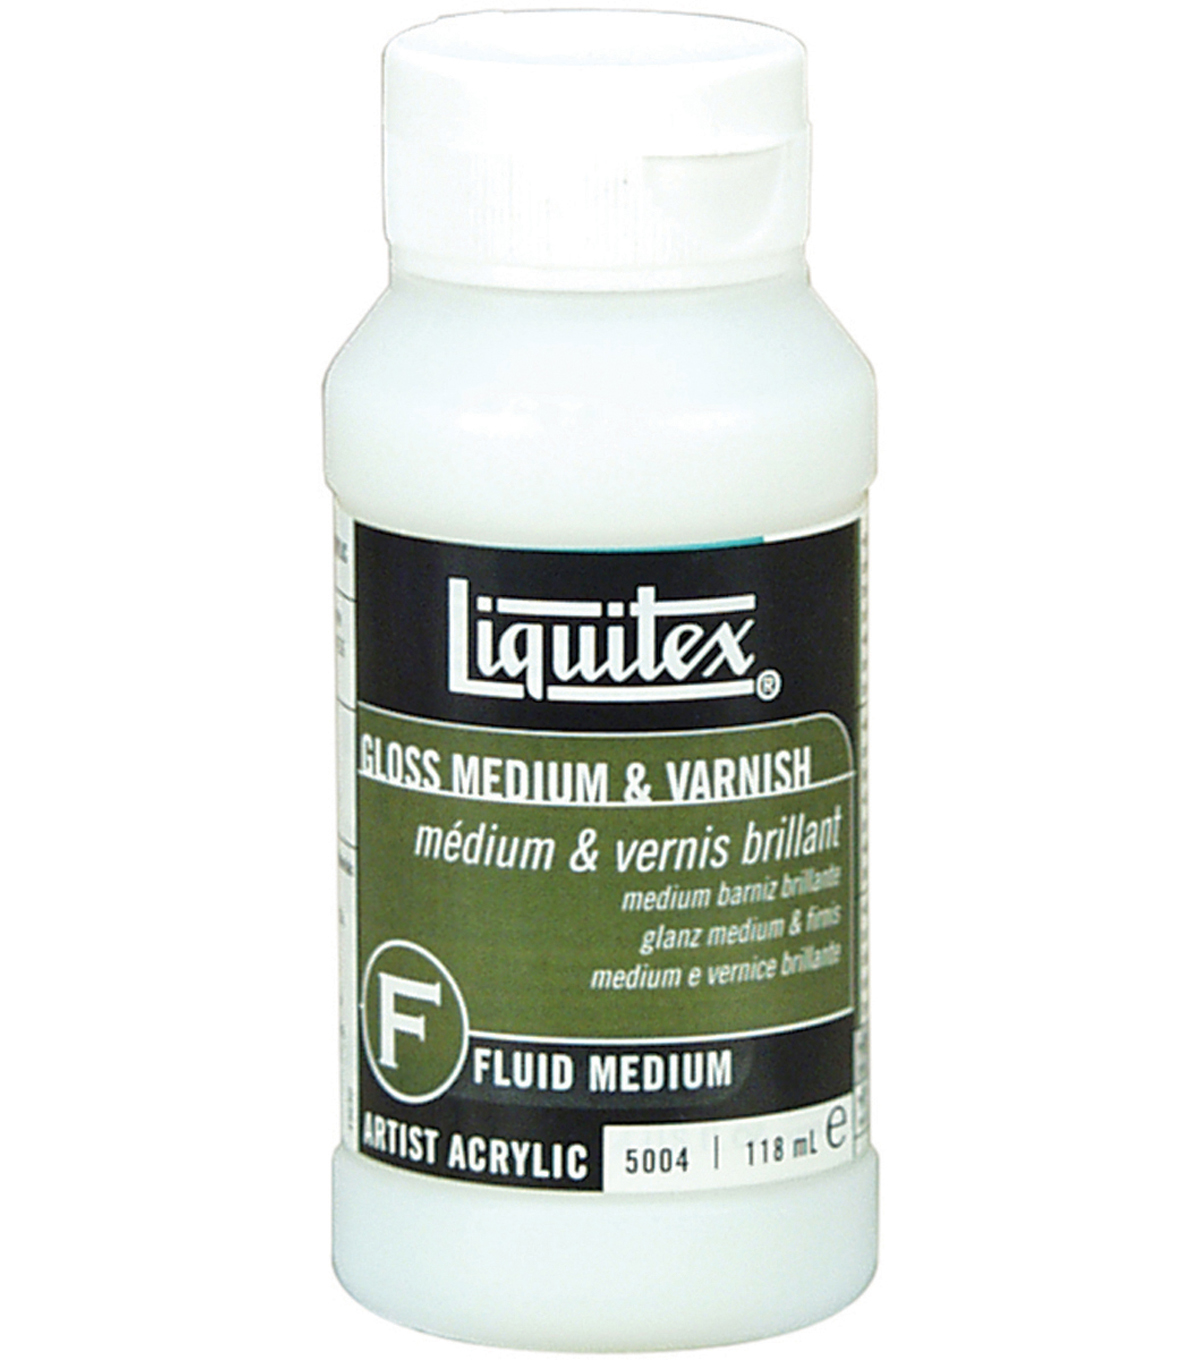 Liquitex Gloss Acrylic Fluid Medium & Varnish 4oz